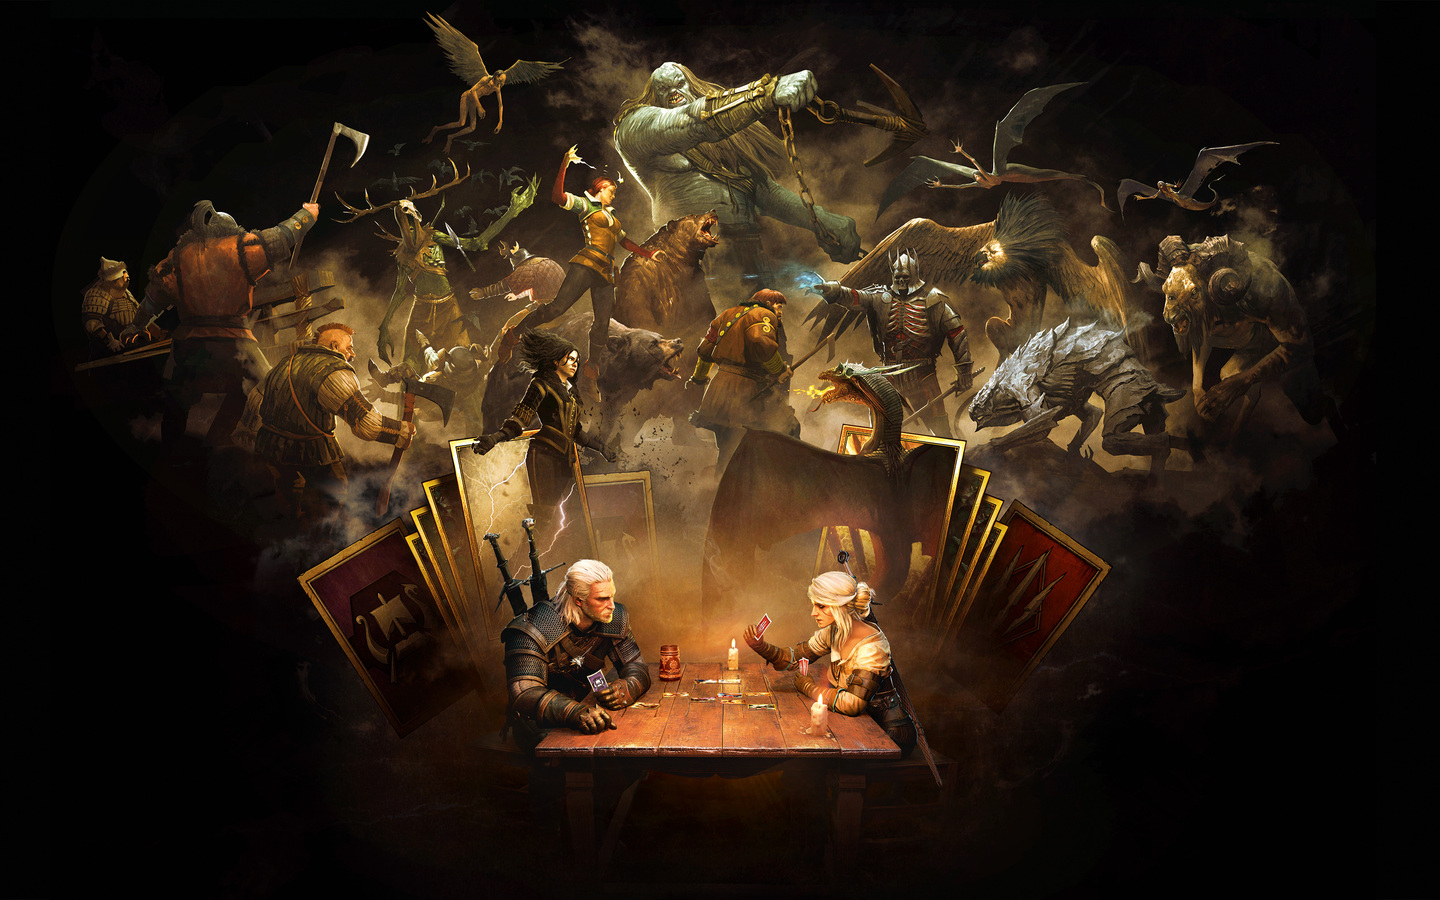 gwent-the-witcher-card-game-57.jpg